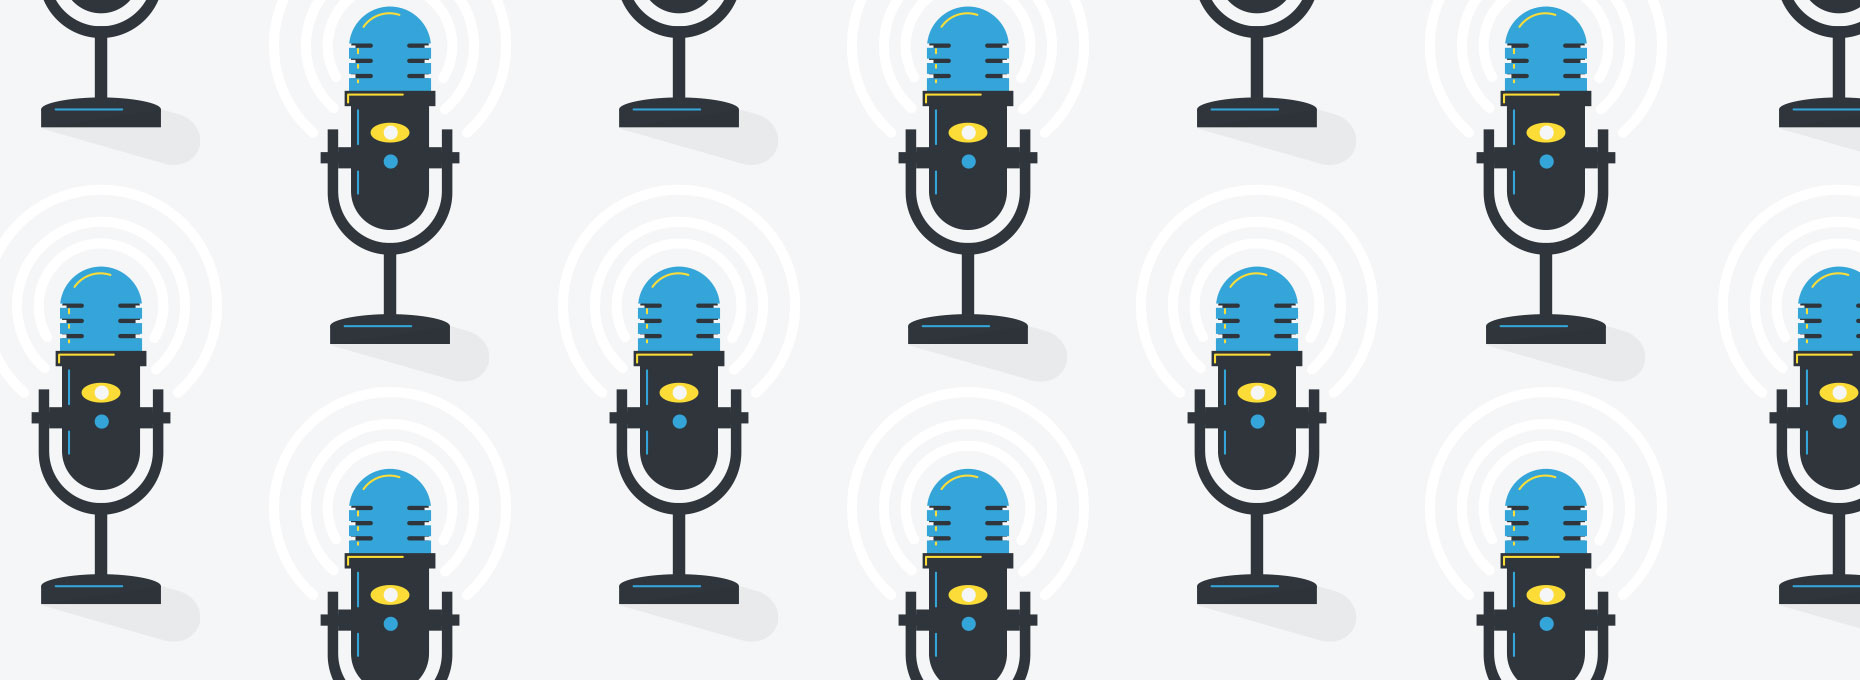 Podcast graphic image with repeating icons and microphones